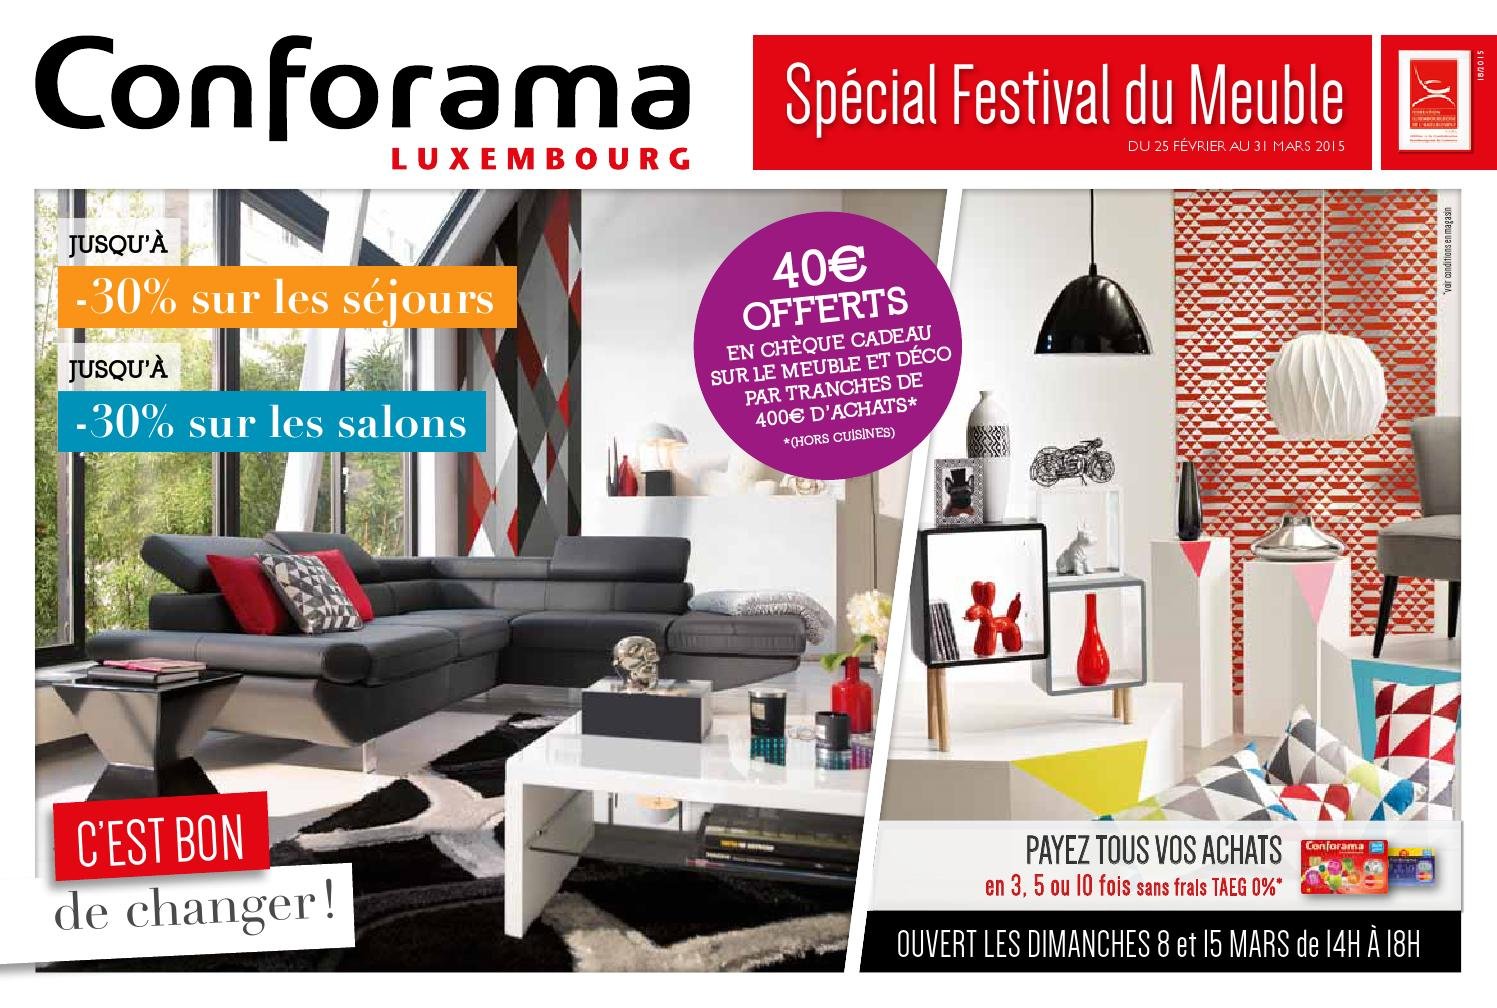 doc 18 sp cial festival du meuble by conforama luxembourg issuu. Black Bedroom Furniture Sets. Home Design Ideas